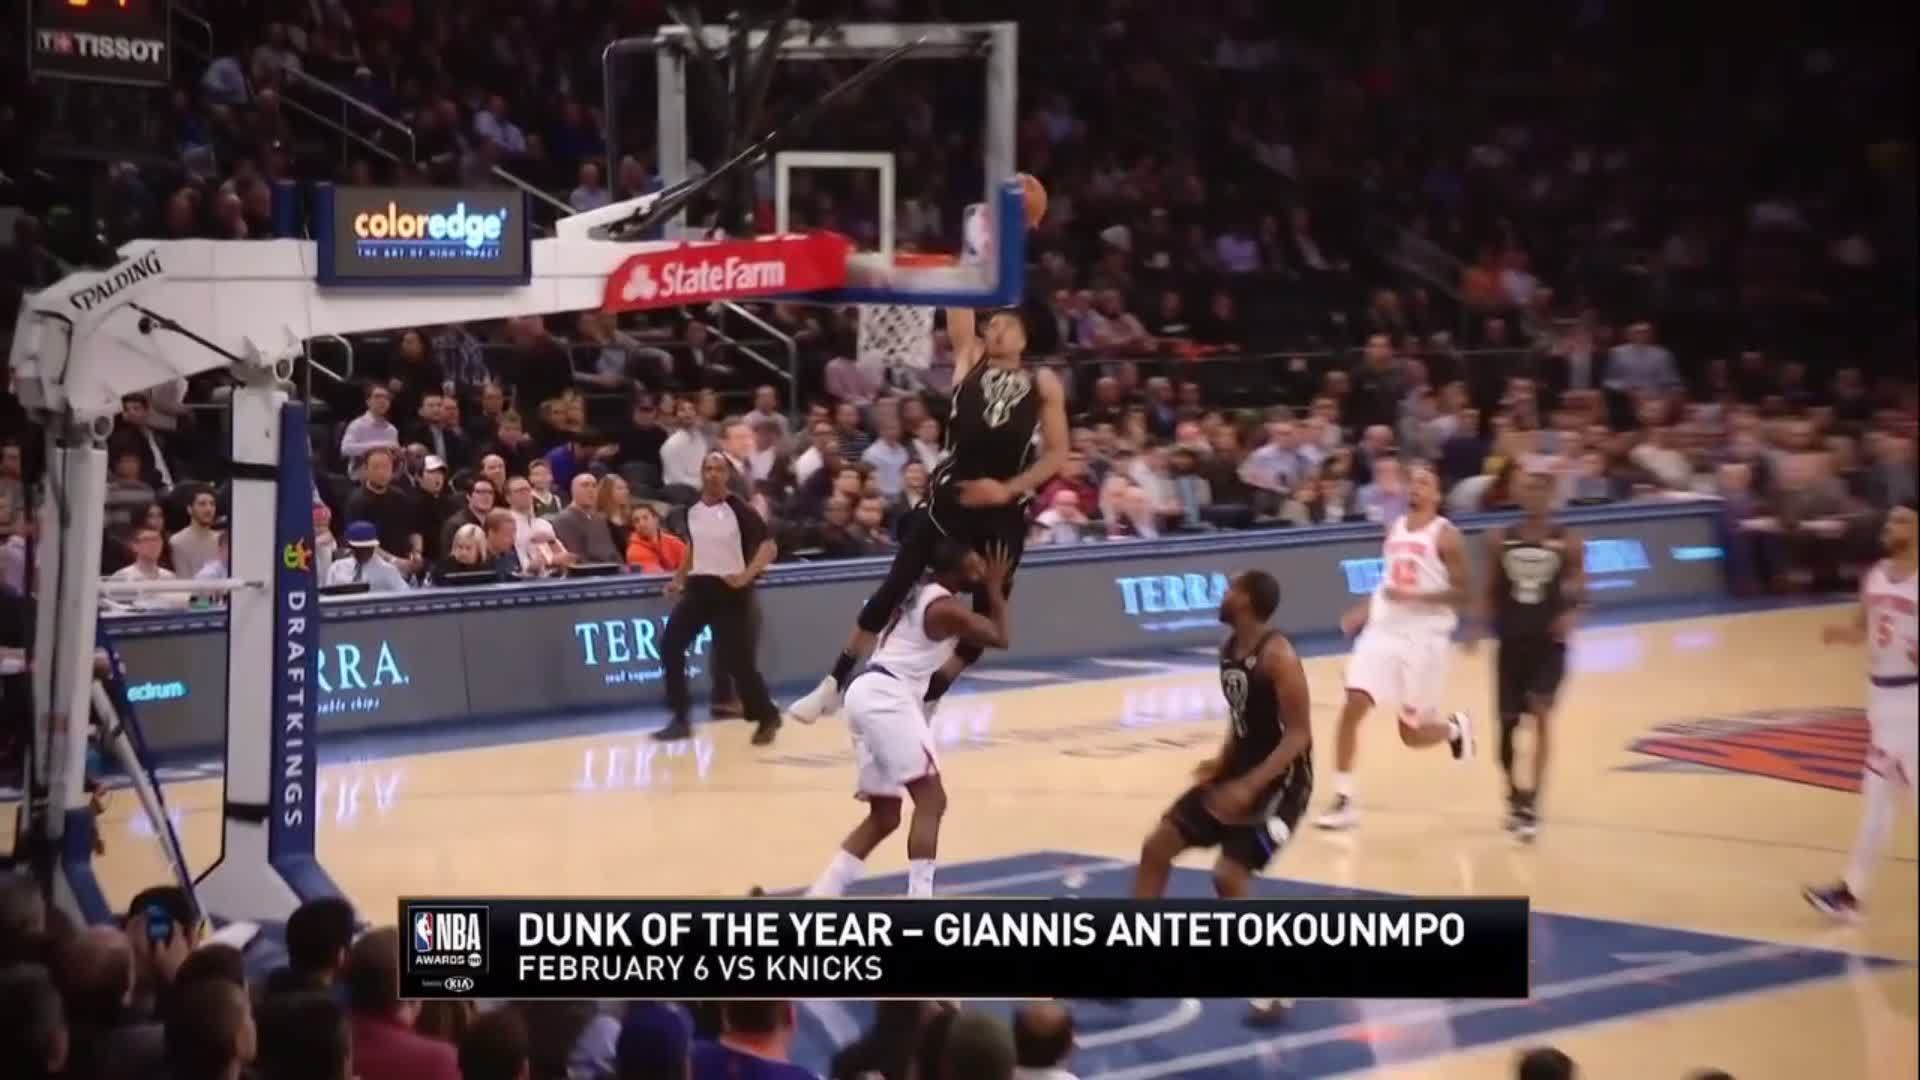 .@Giannis_An34 of the @Bucks wins the 2018 #DunkOfTheYear! ������  #NBAAwards https://t.co/pJVI2yip3w